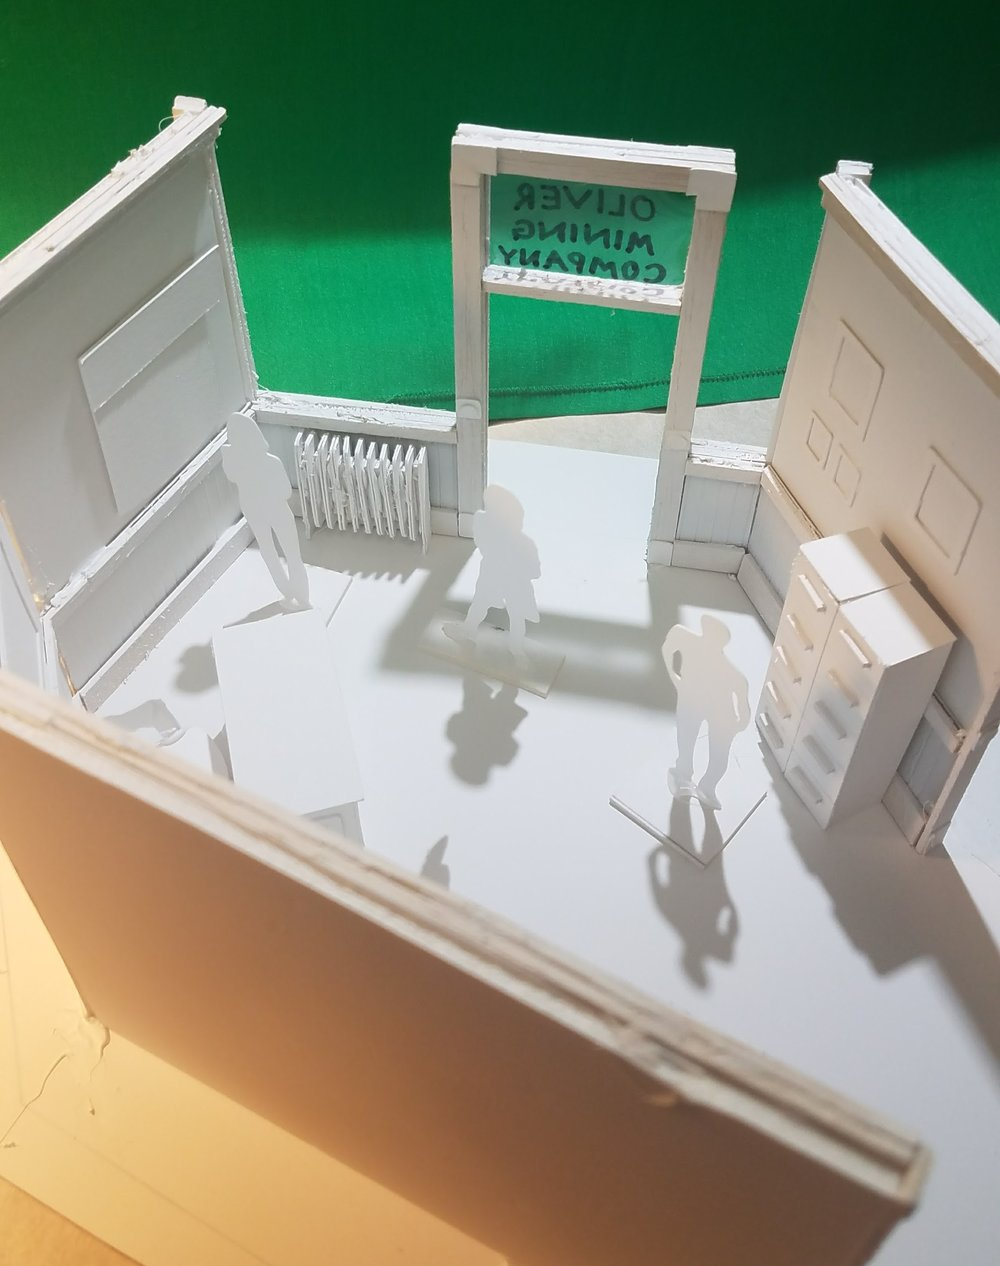 Labor exhibit model (1st draft) for Minnesota Discovery Center, Chisholm, MN -- exhibit design